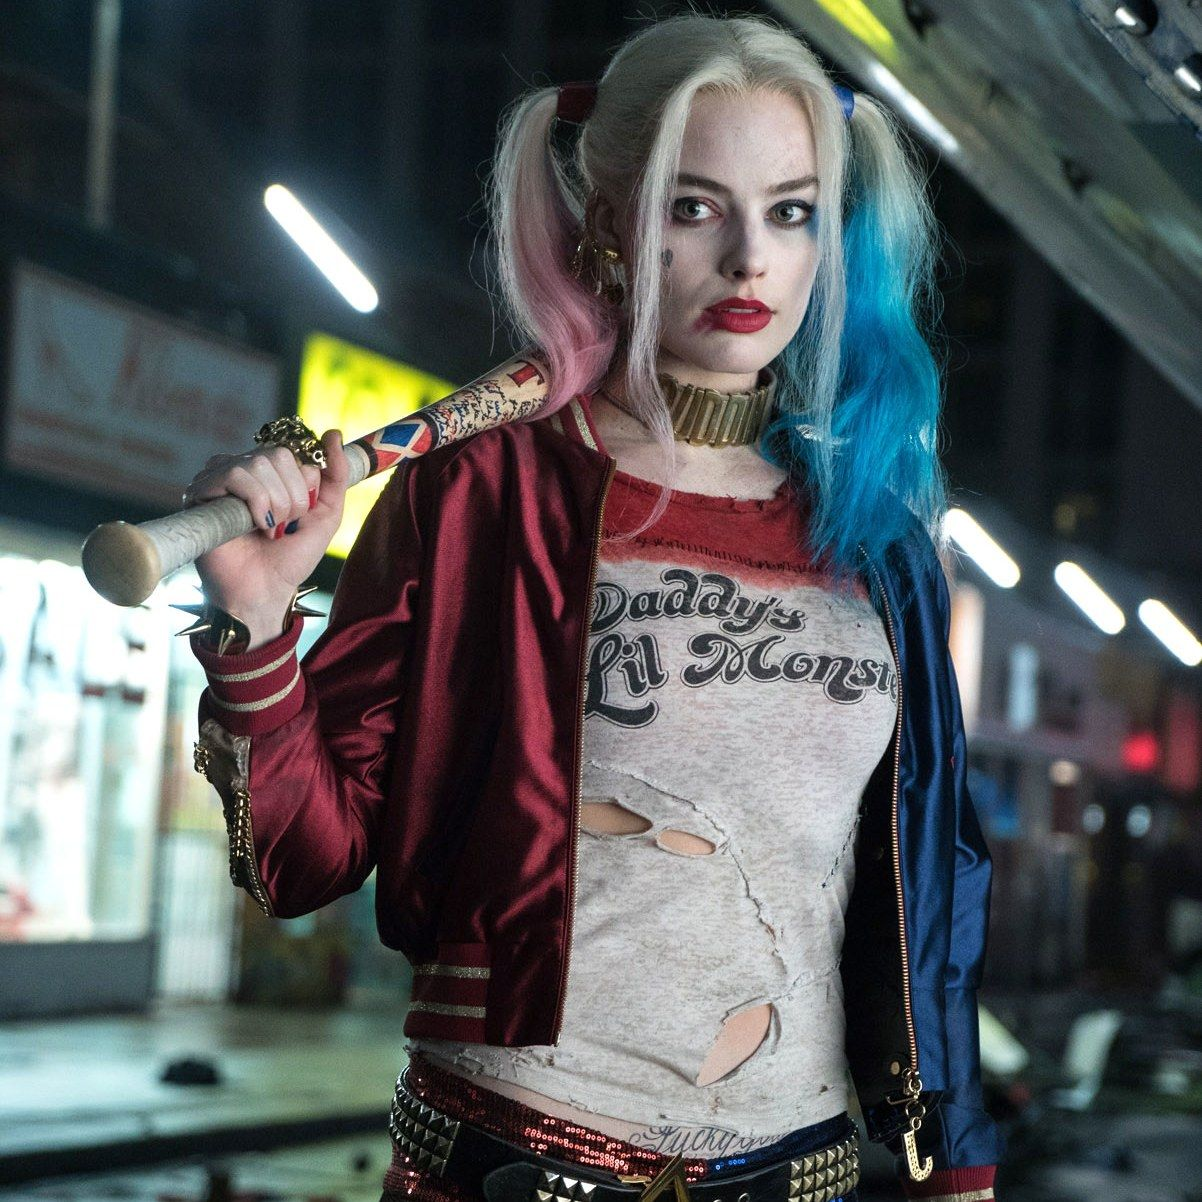 The Suicide Squad's James Gunn confirms hugely star-studded cast joining Margot Robbie's Harley Quinn